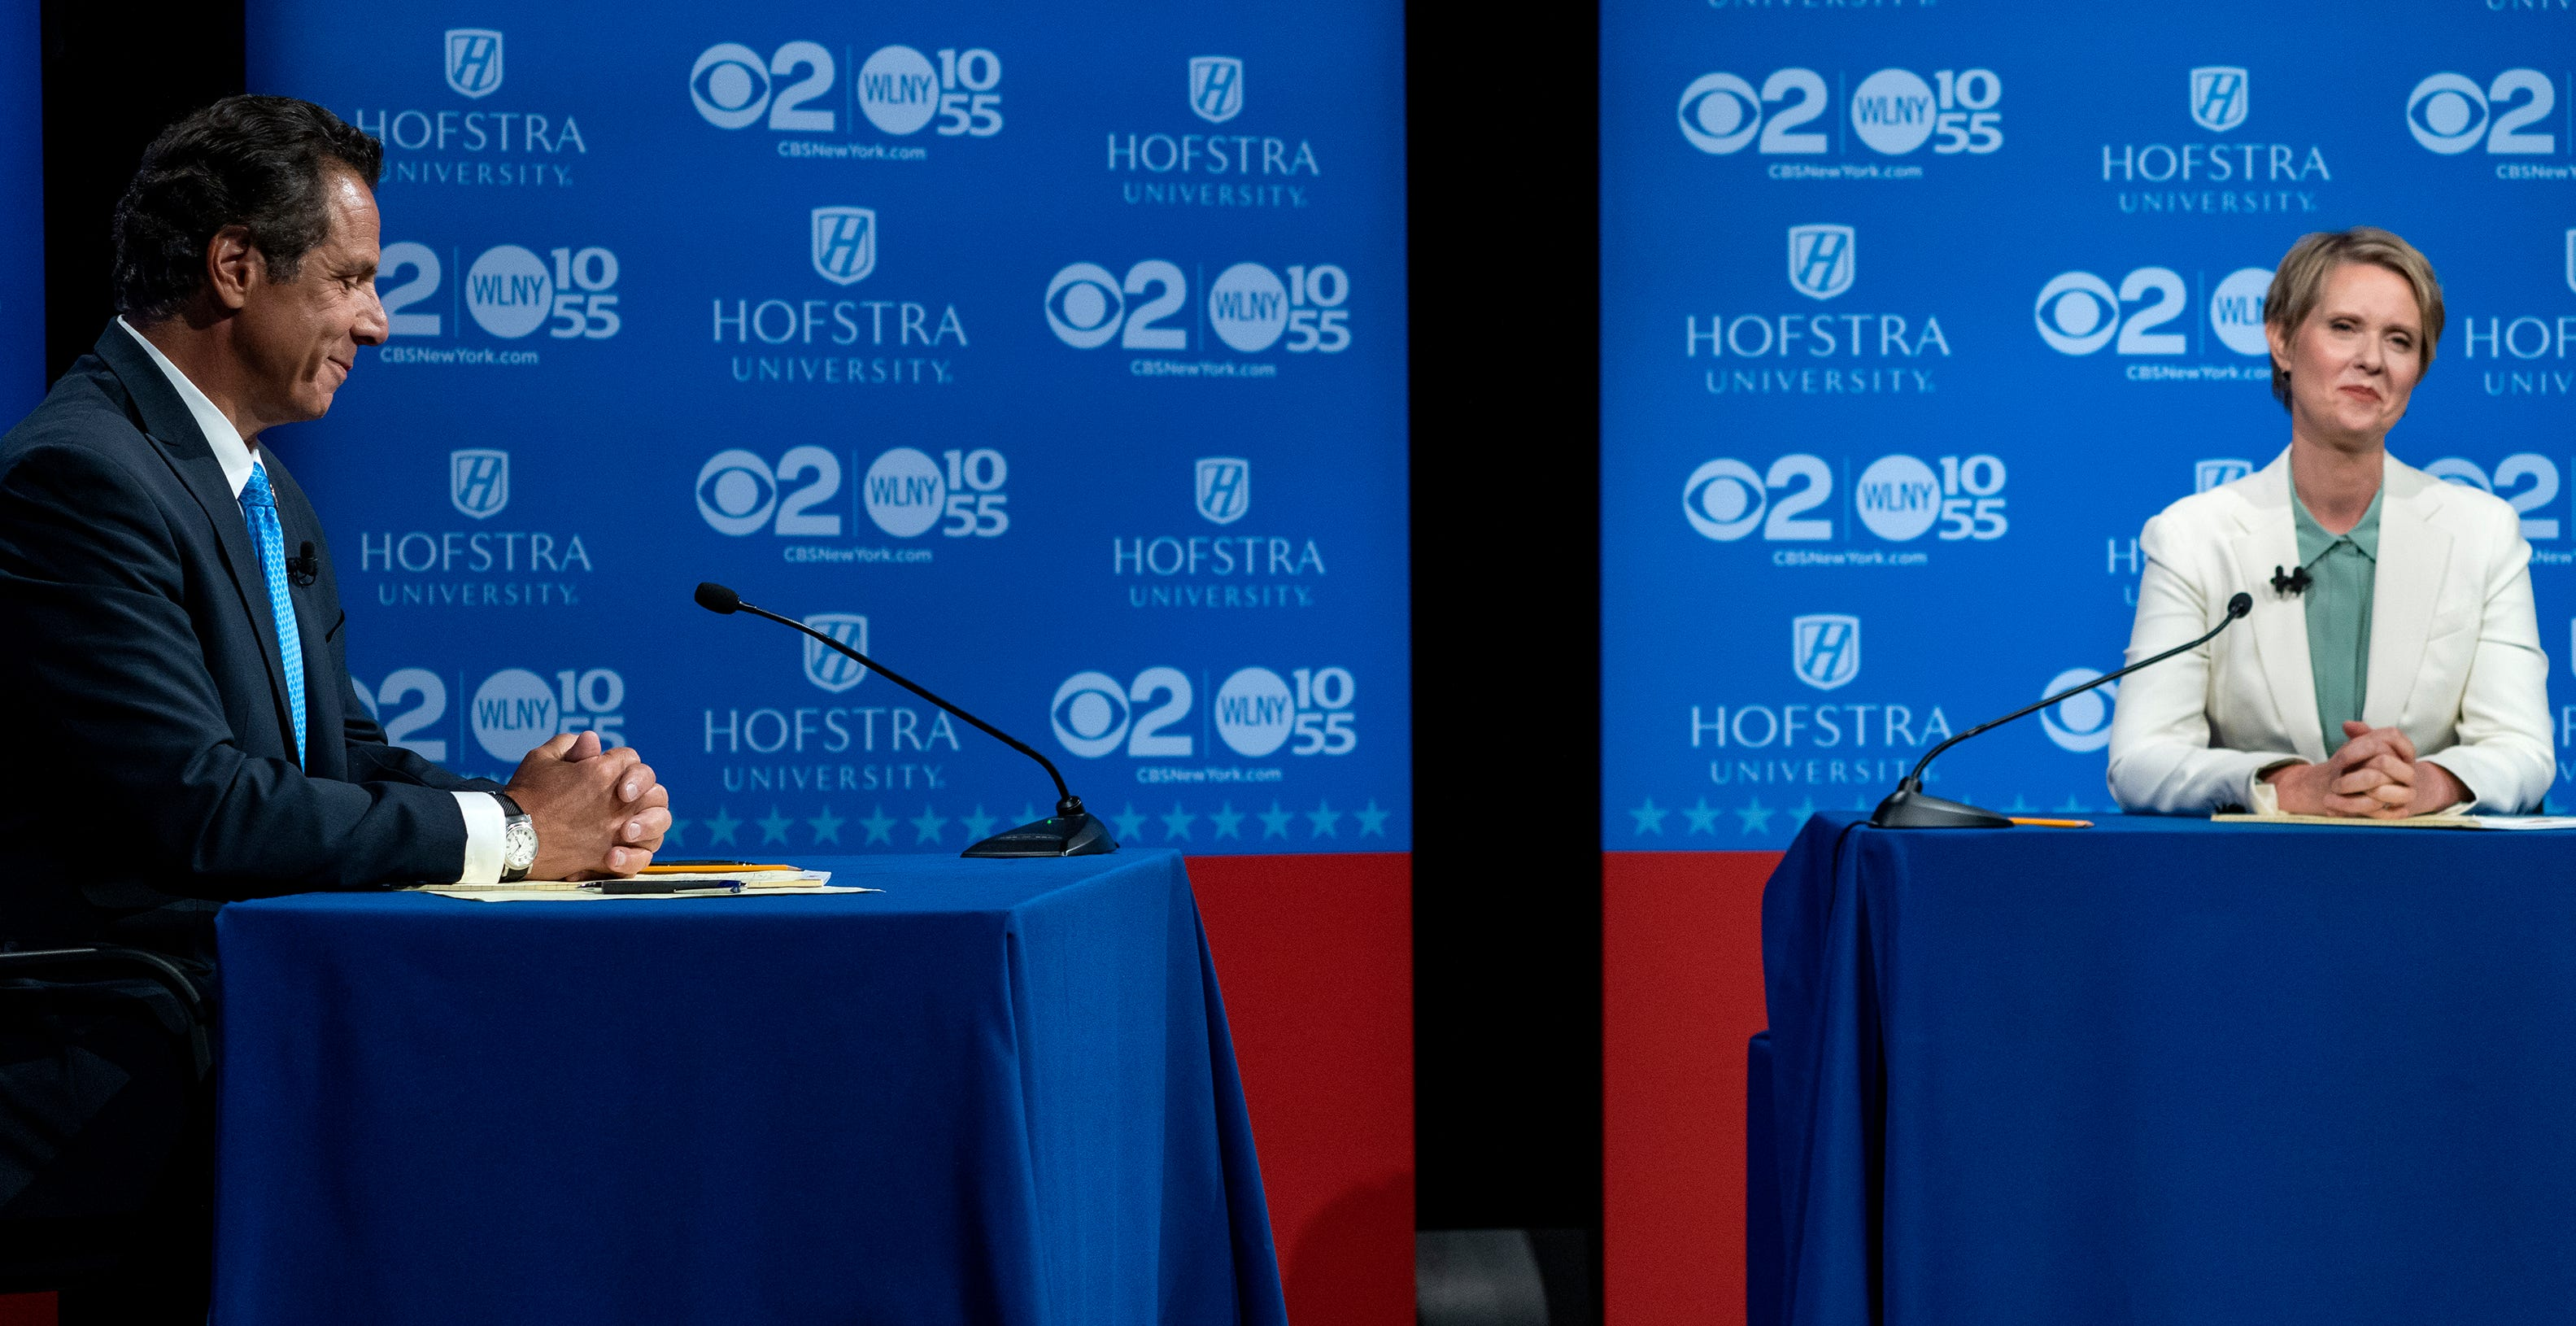 New York Gov. Andrew Cuomo and Democratic New York gubernatorial candidate Cynthia Nixon pause before the start of a gubernatorial debate at Hofstra University back in August.